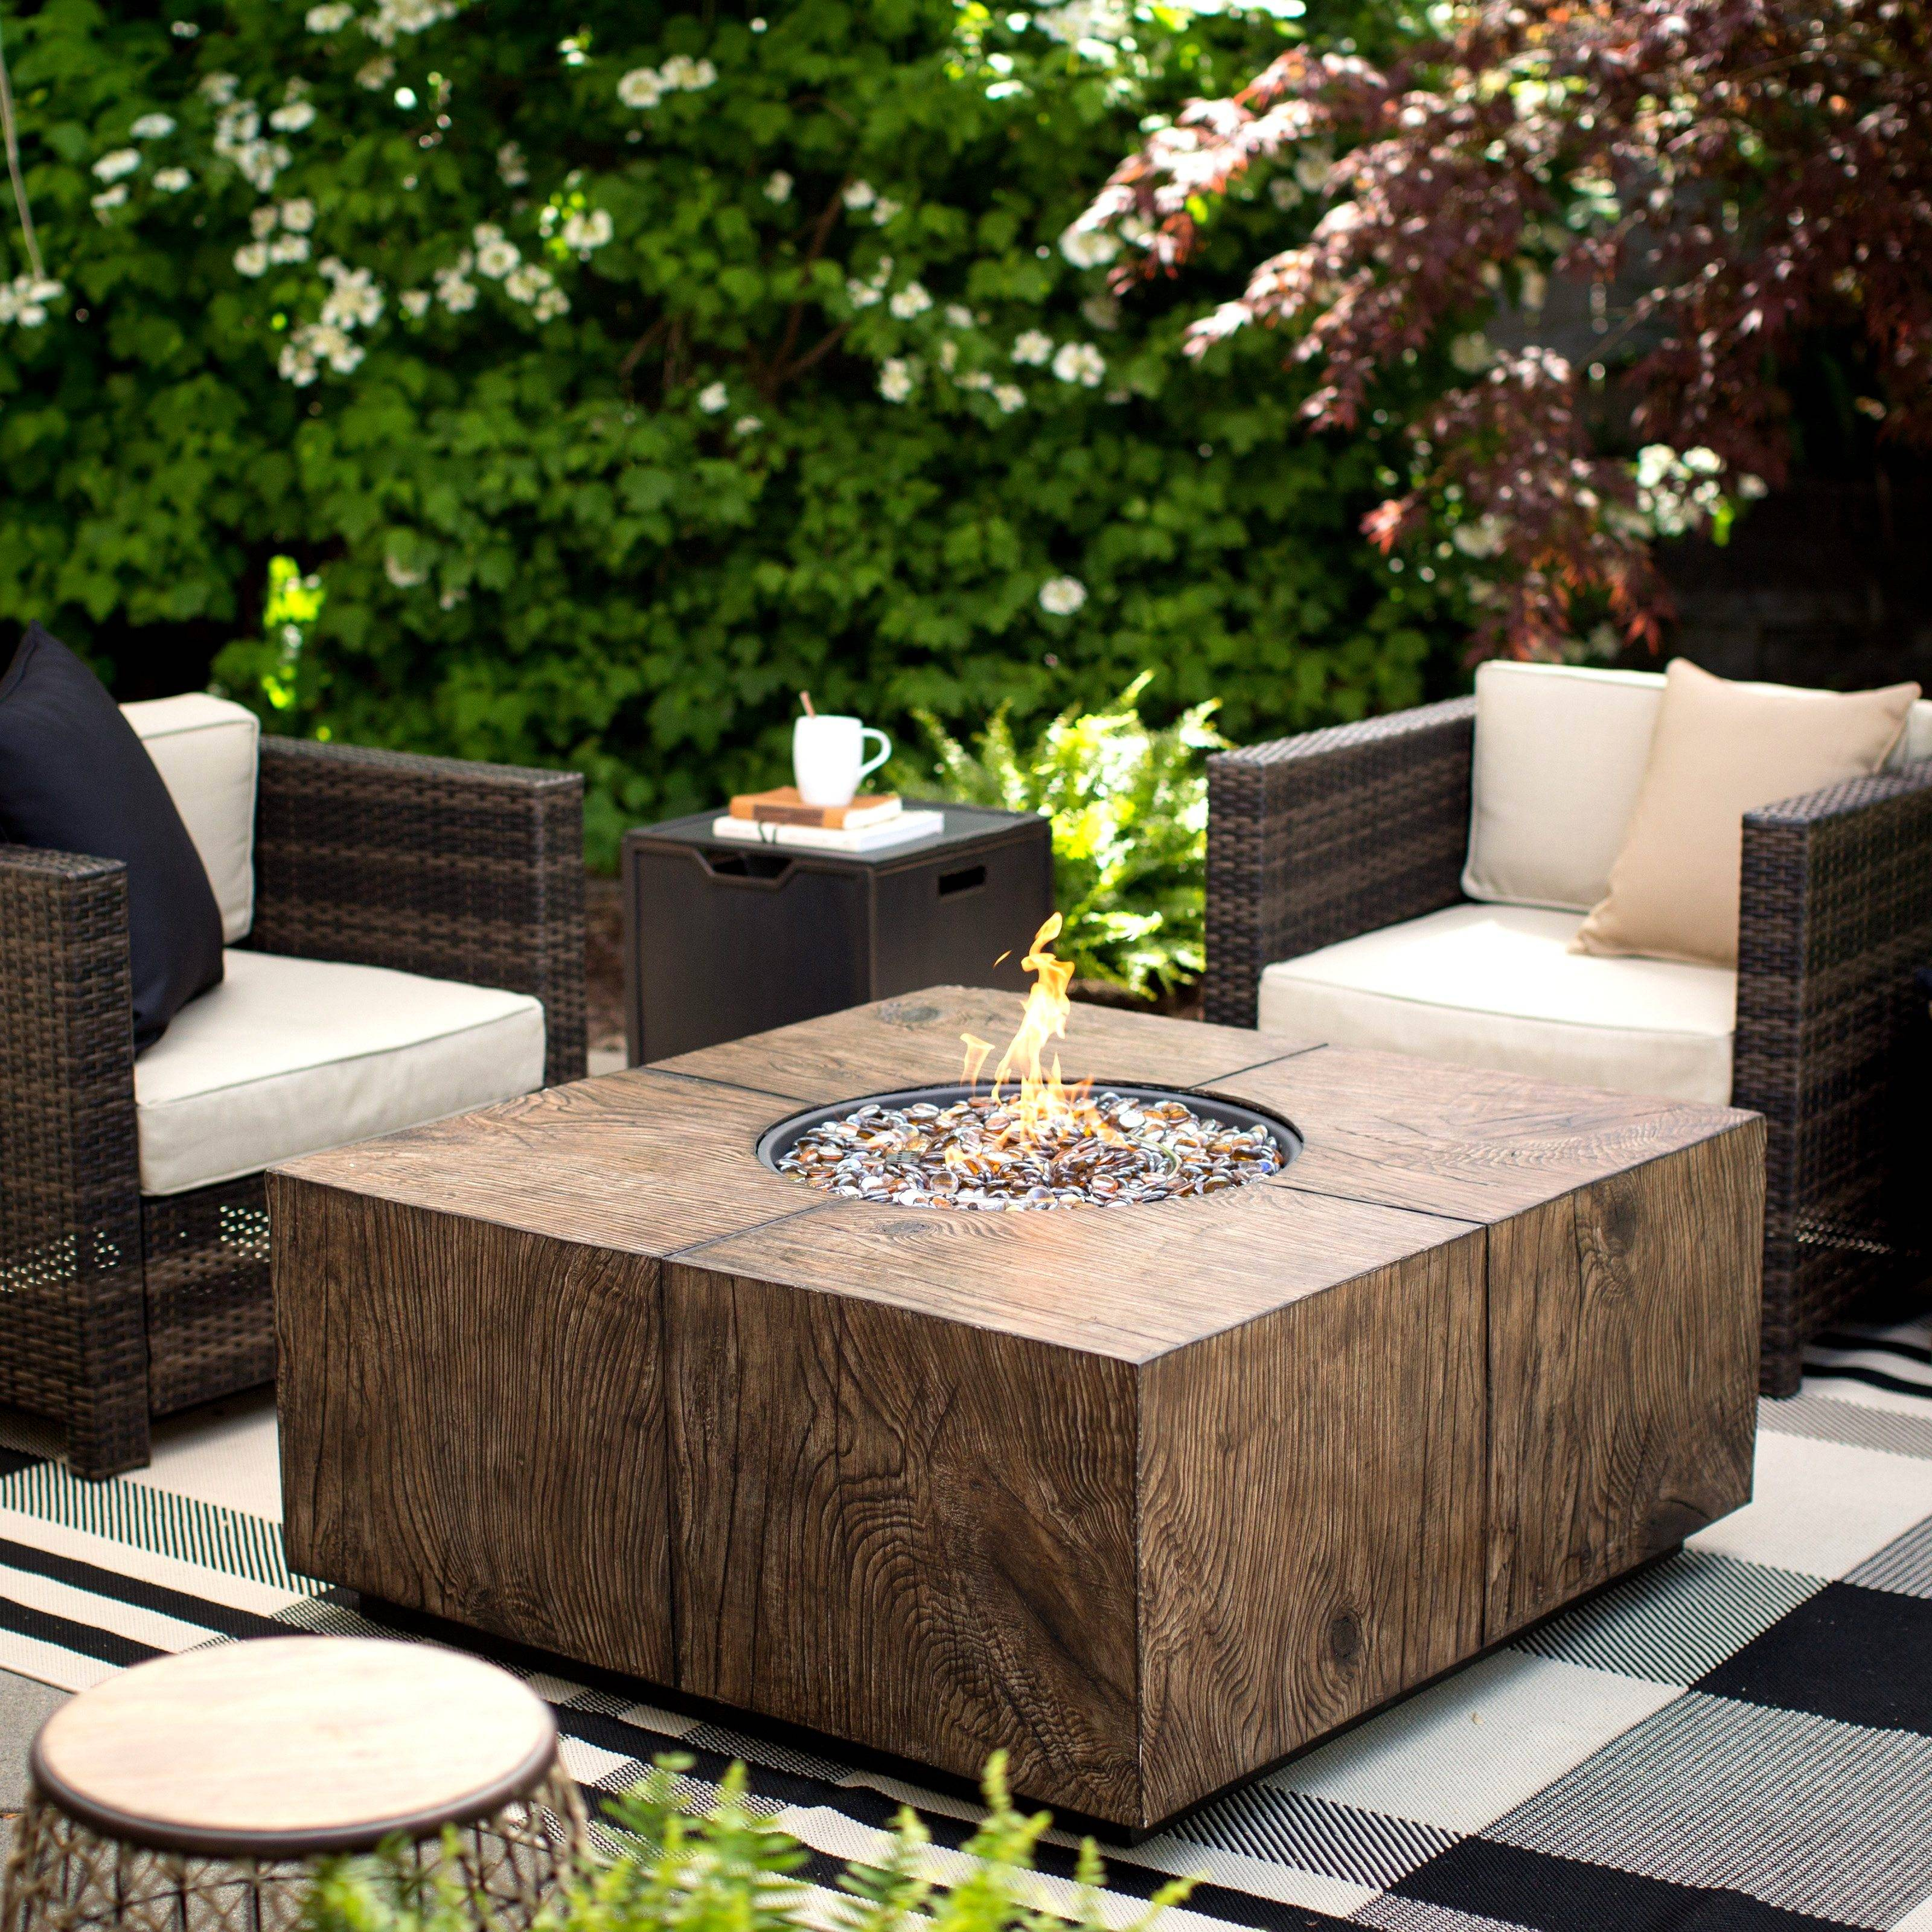 Merveilleux Outdoor Design Sears Fire Pit Inspirational 25 Awesome Outdoor For  Measurements 3200 X 3200